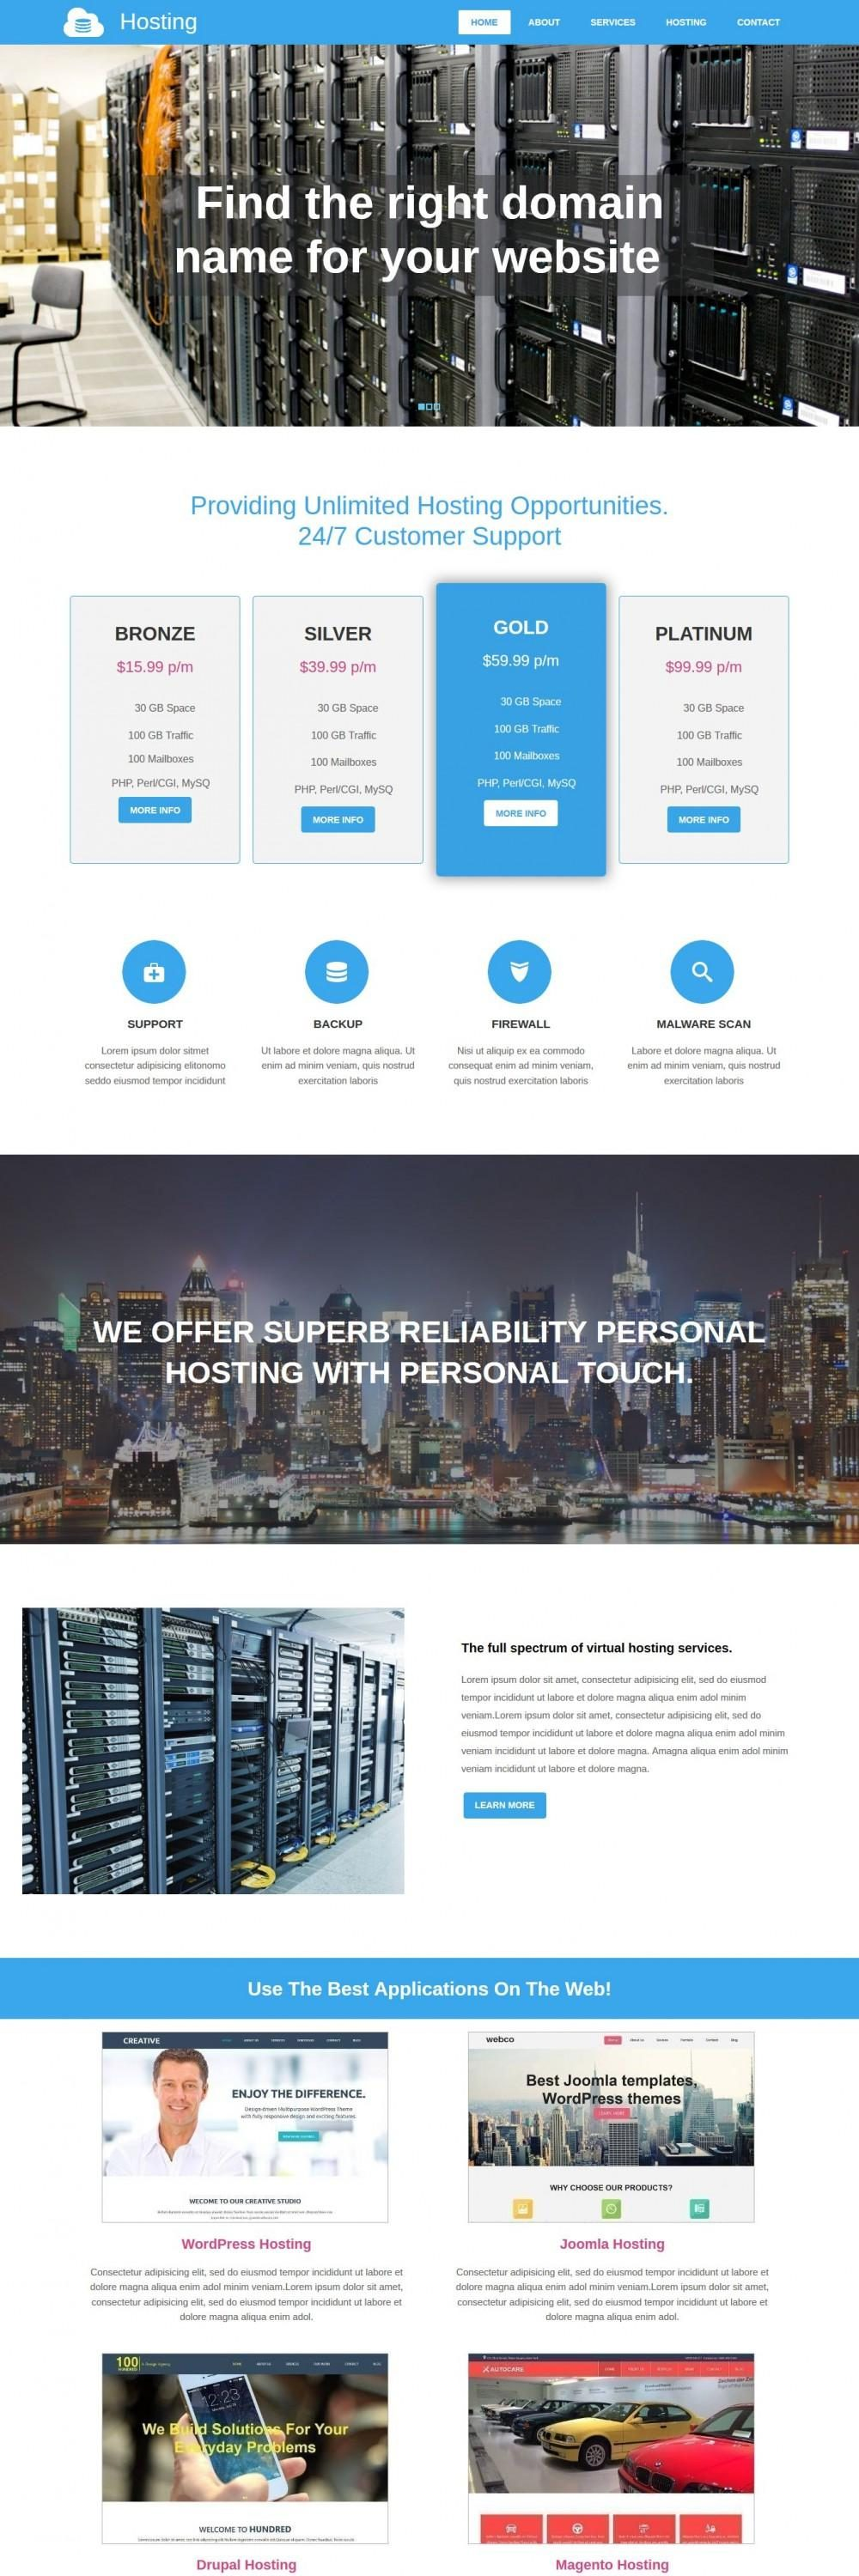 Hosting - Responsive WordPress Theme for Hosting